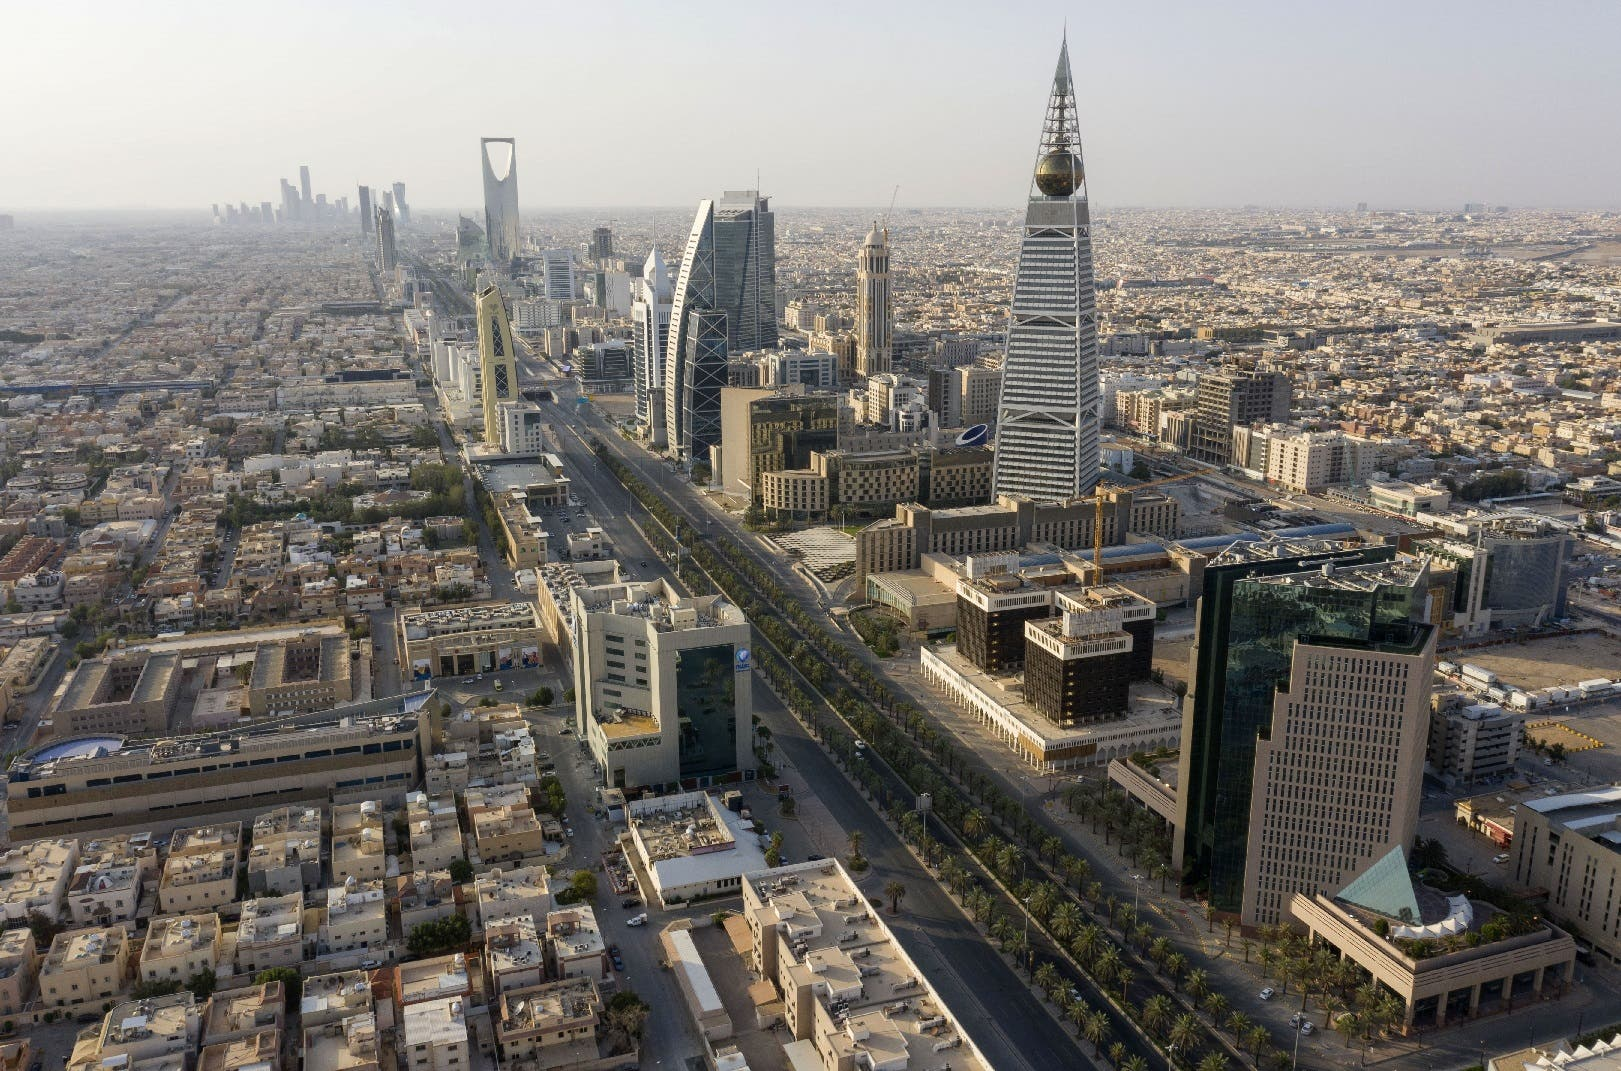 An aerial view of the Saudi capital Riyadh, on May 24, 2020. (AFP)